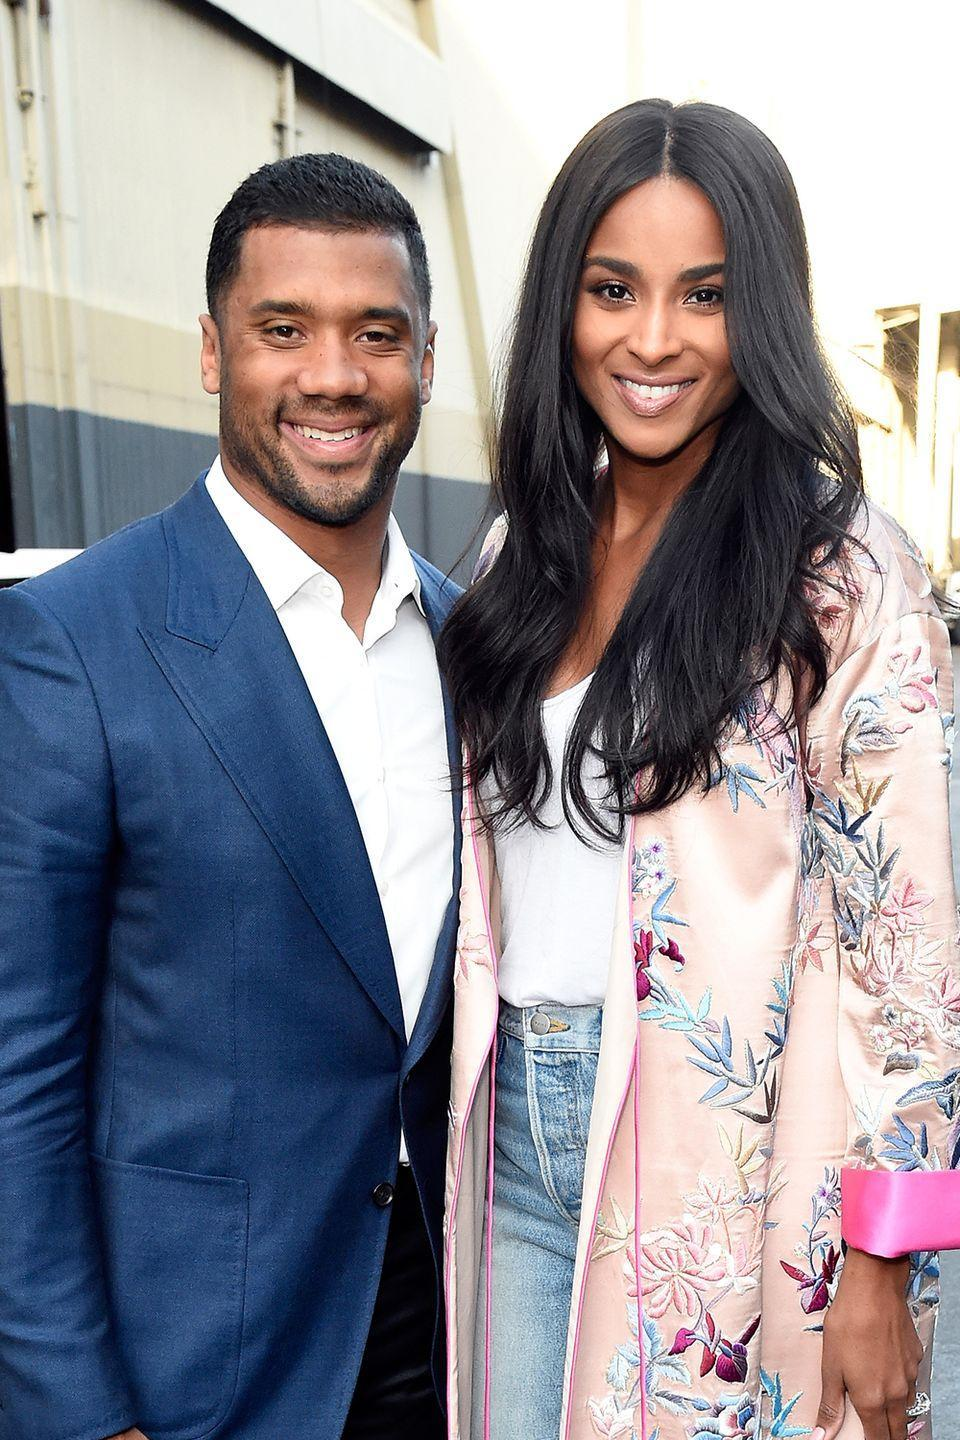 """<p>Just a couple of months into their relationship, singer Ciara and NFL star Russell Wilson vowed they'd be celibate until the day they were married—which was July, 6, 2016.</p><p>""""I really believe that when you focus on a friendship, you have the opportunity to build a strong foundation for a relationship—and once you know you're really great friends and you're what we call 'equally yoked,' where you share the same values or the same outlook on life, it kind of sets the tone,"""" Ciara said in <a href=""""http://people.com/music/ciara-explains-russell-wilson-abstinence-cosmopolitan/"""" rel=""""nofollow noopener"""" target=""""_blank"""" data-ylk=""""slk:an interview"""" class=""""link rapid-noclick-resp"""">an interview</a>. </p>"""